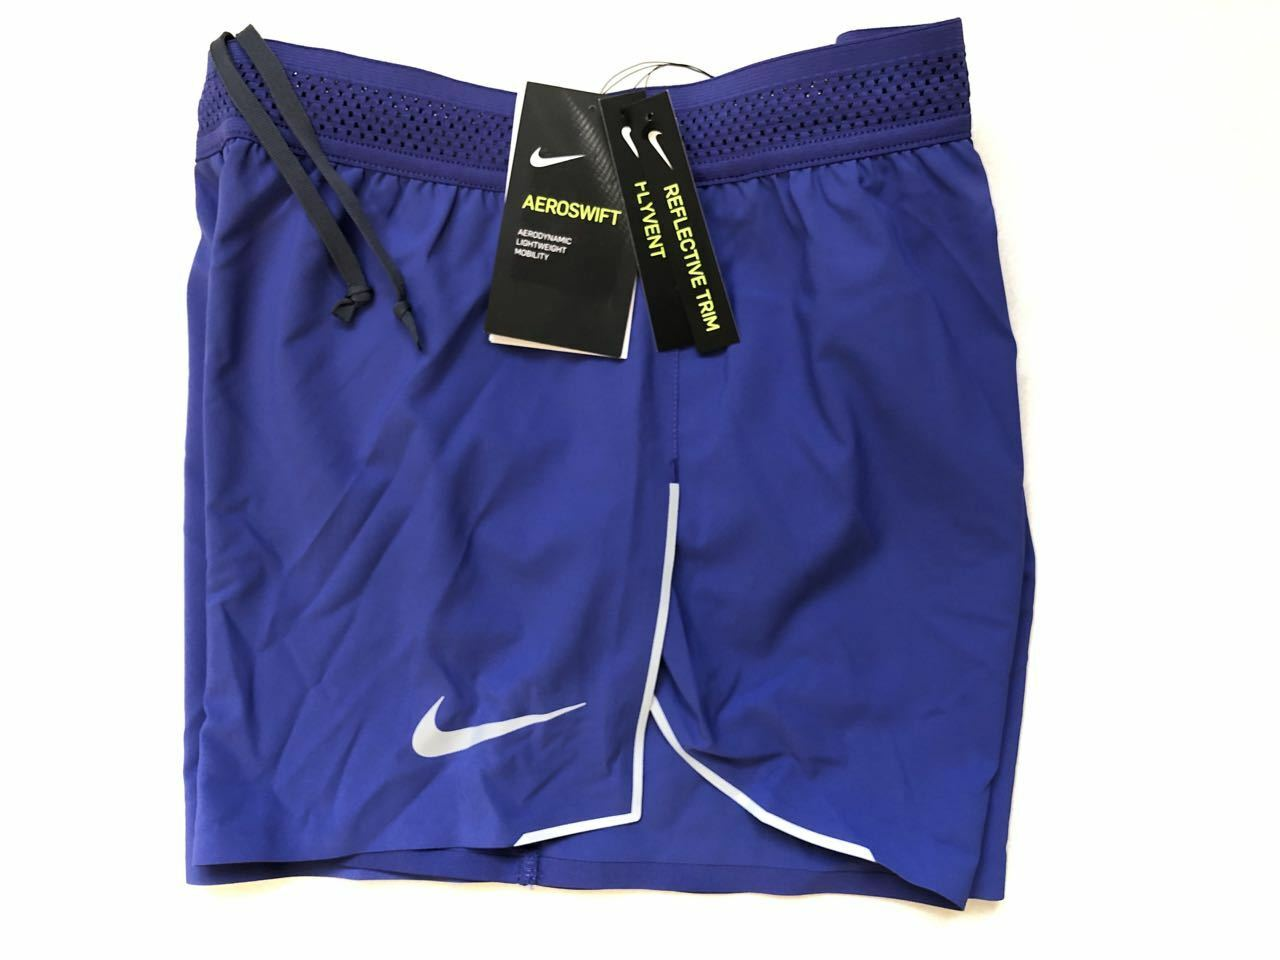 NIKE AEROSWIFT SHORTS L NEW WITH TAGS RUNNING 4'' FLYVENT WORKOUT SHORTS  PANTS